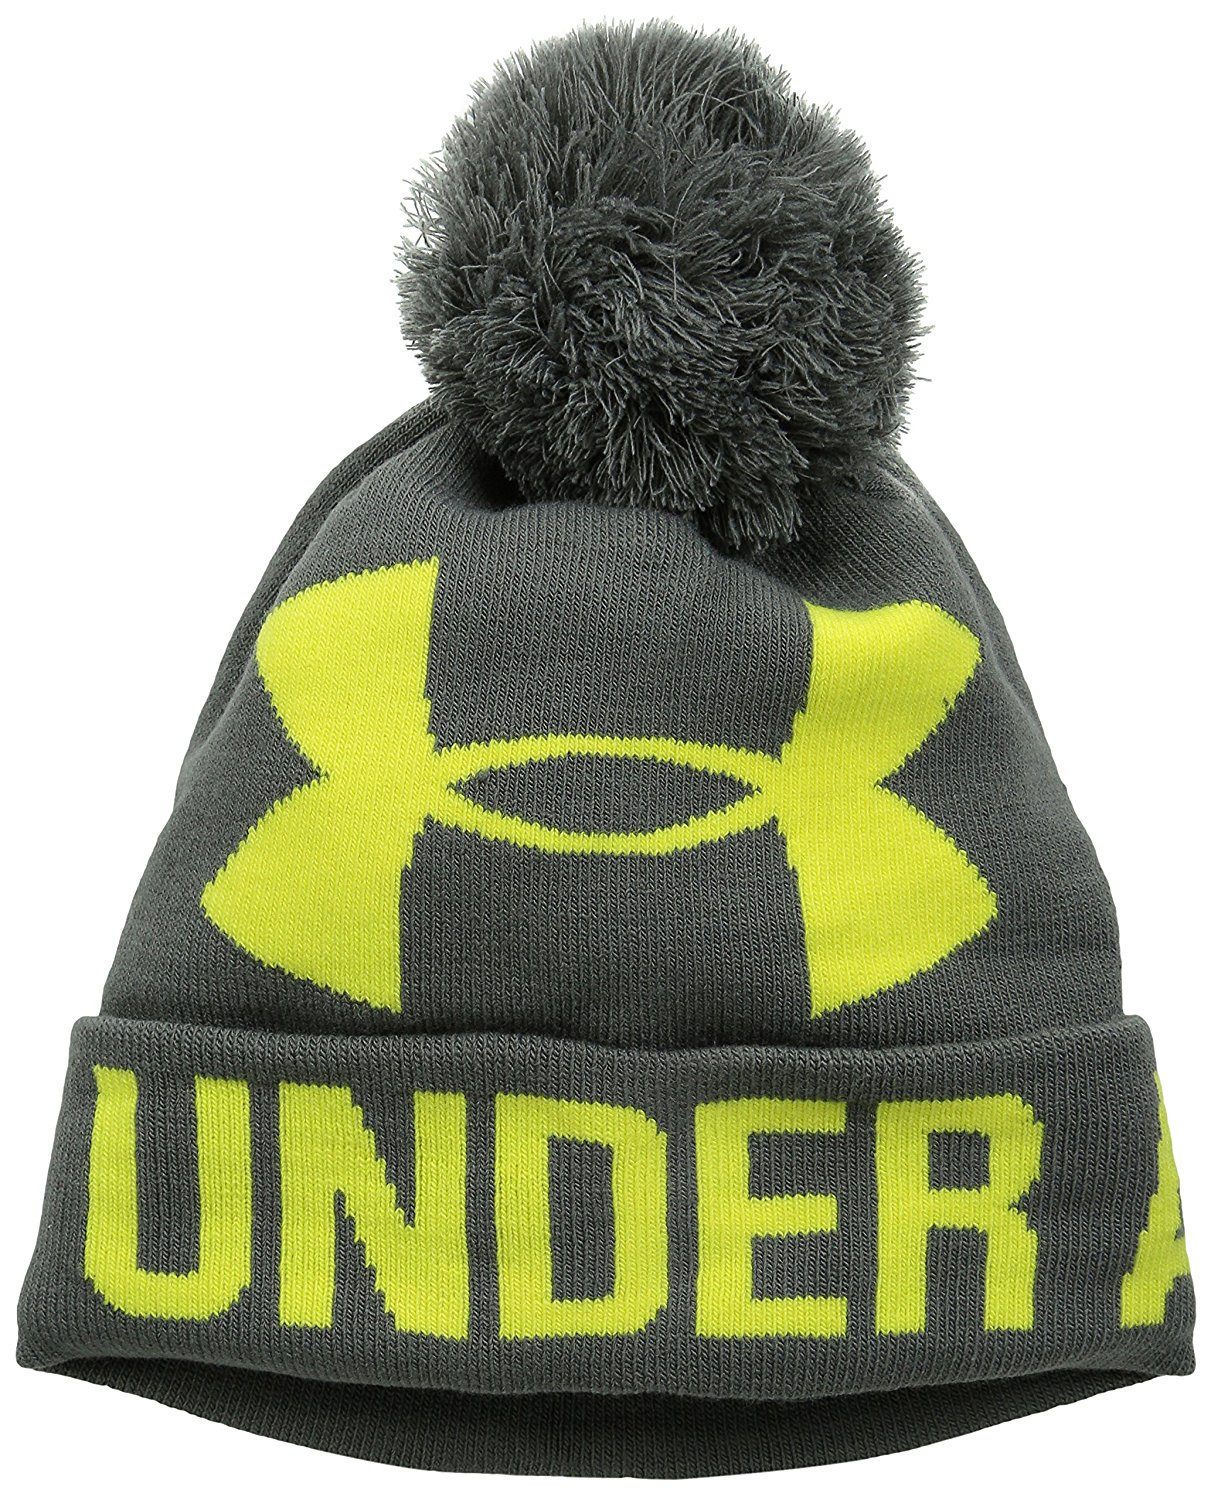 ced26d20b08 Under Armour Womens Graphic Pom Pom Golf Beanie Hats